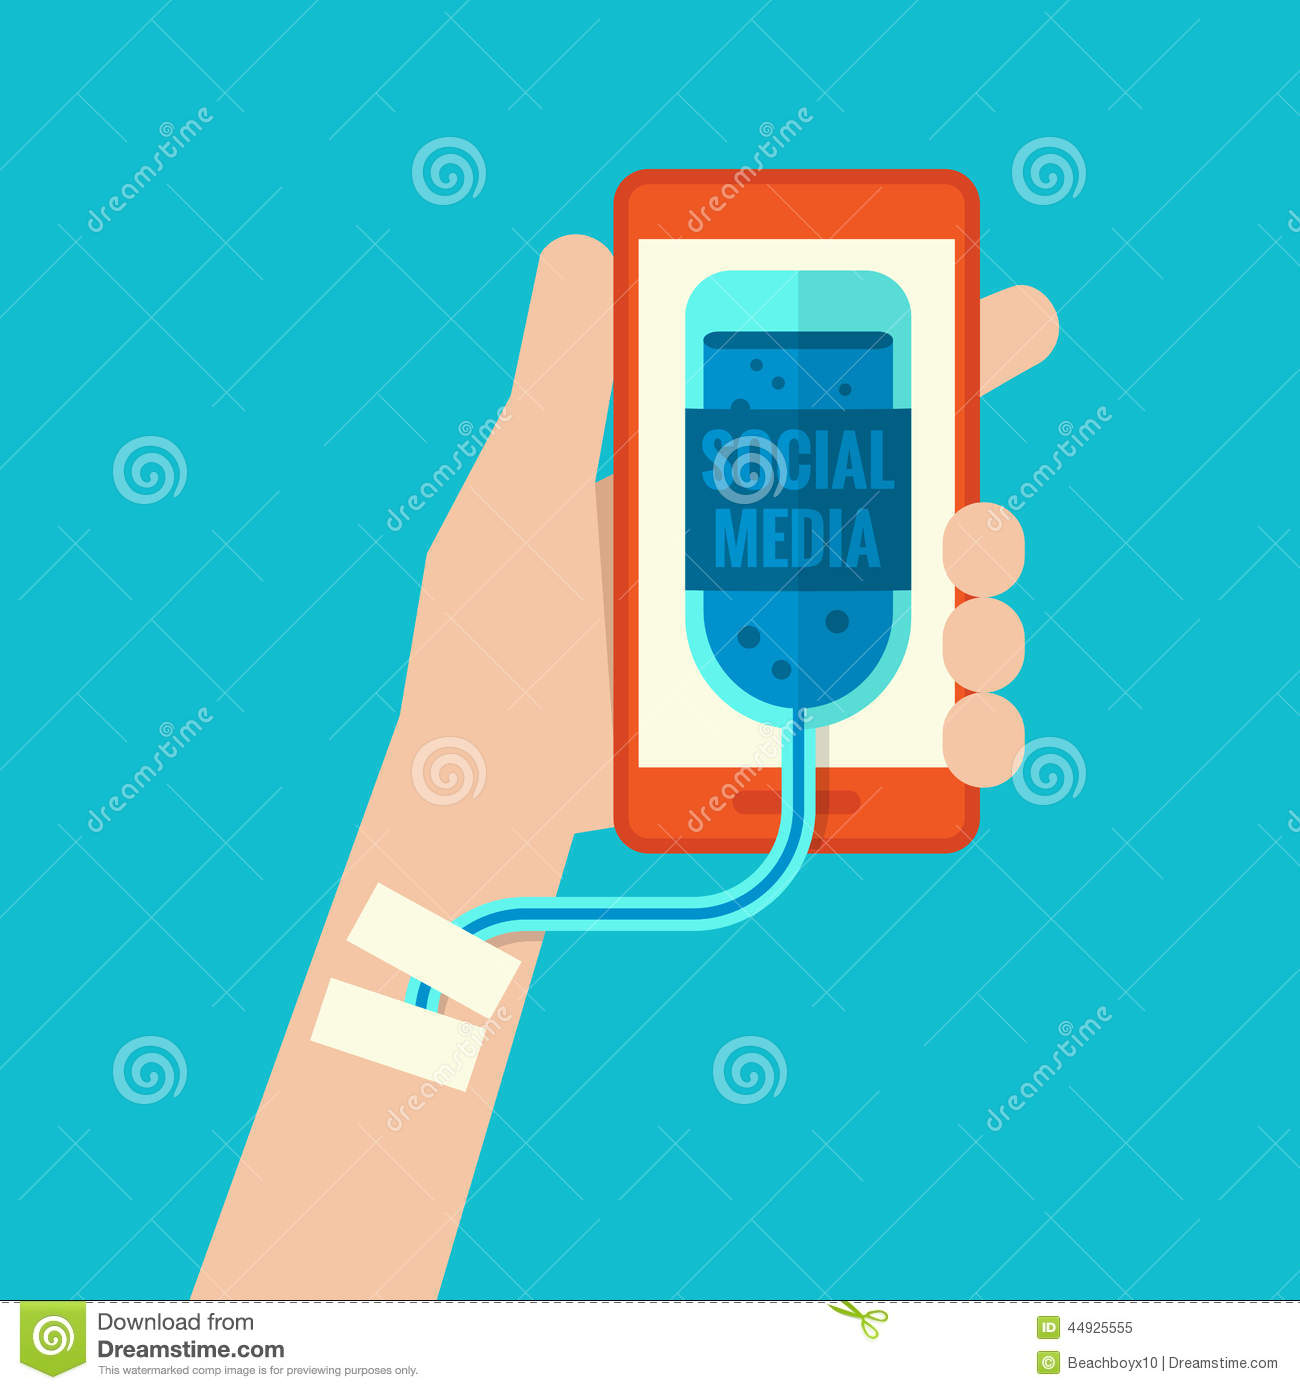 Smartphone Addiction Stock Vector - Image: 44925555